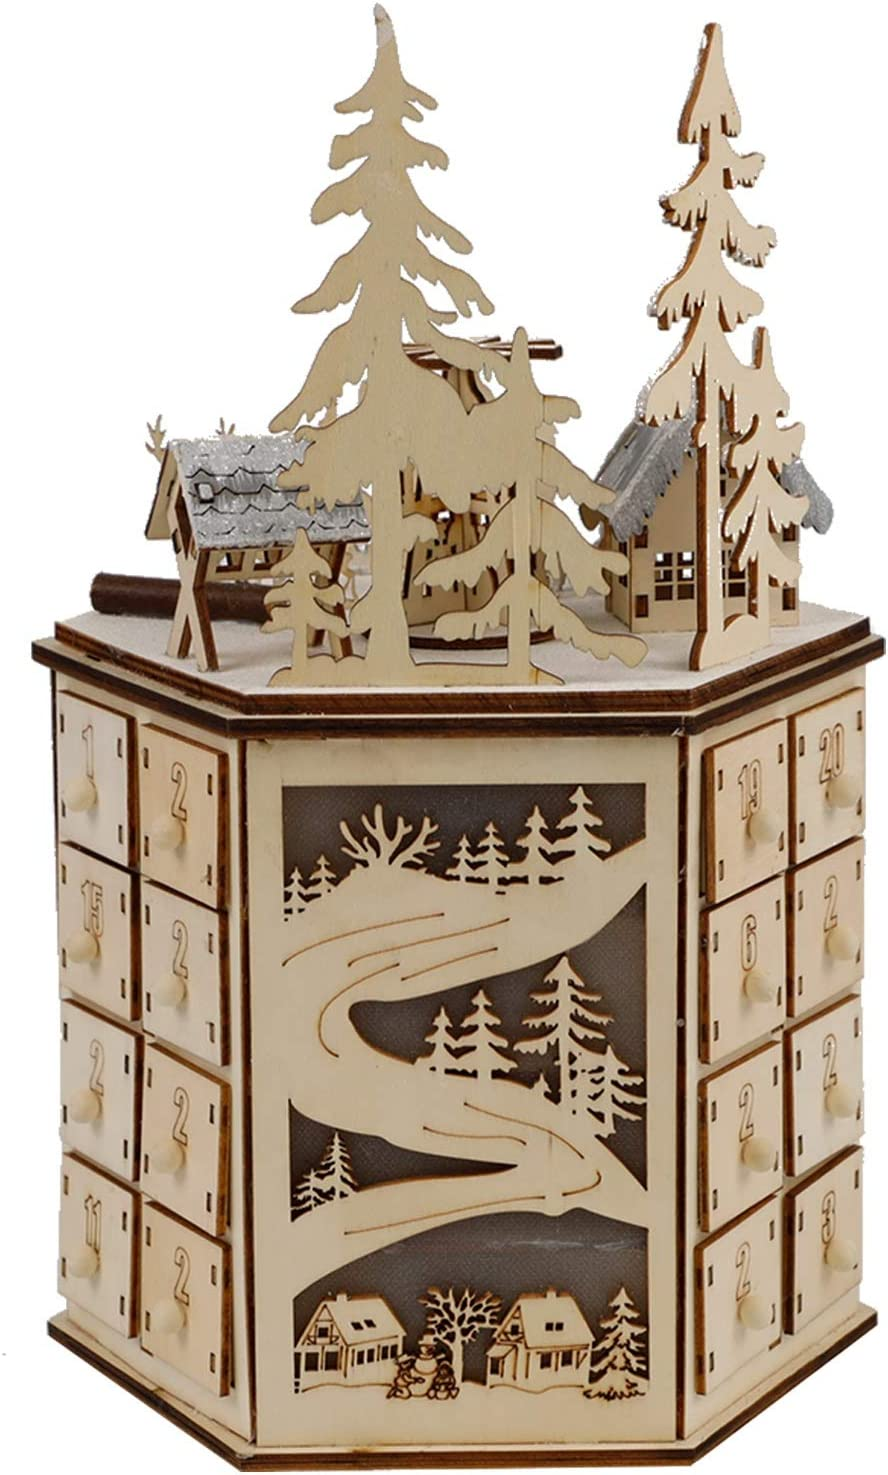 MorTime LED Revolving Music Box Advent Calendar Decorated with Christmas Tree Reindeer House LED Lights, Lighted Wooden Carved 24 Day Countdown to Christmas Calendar, 24 Storage Drawers